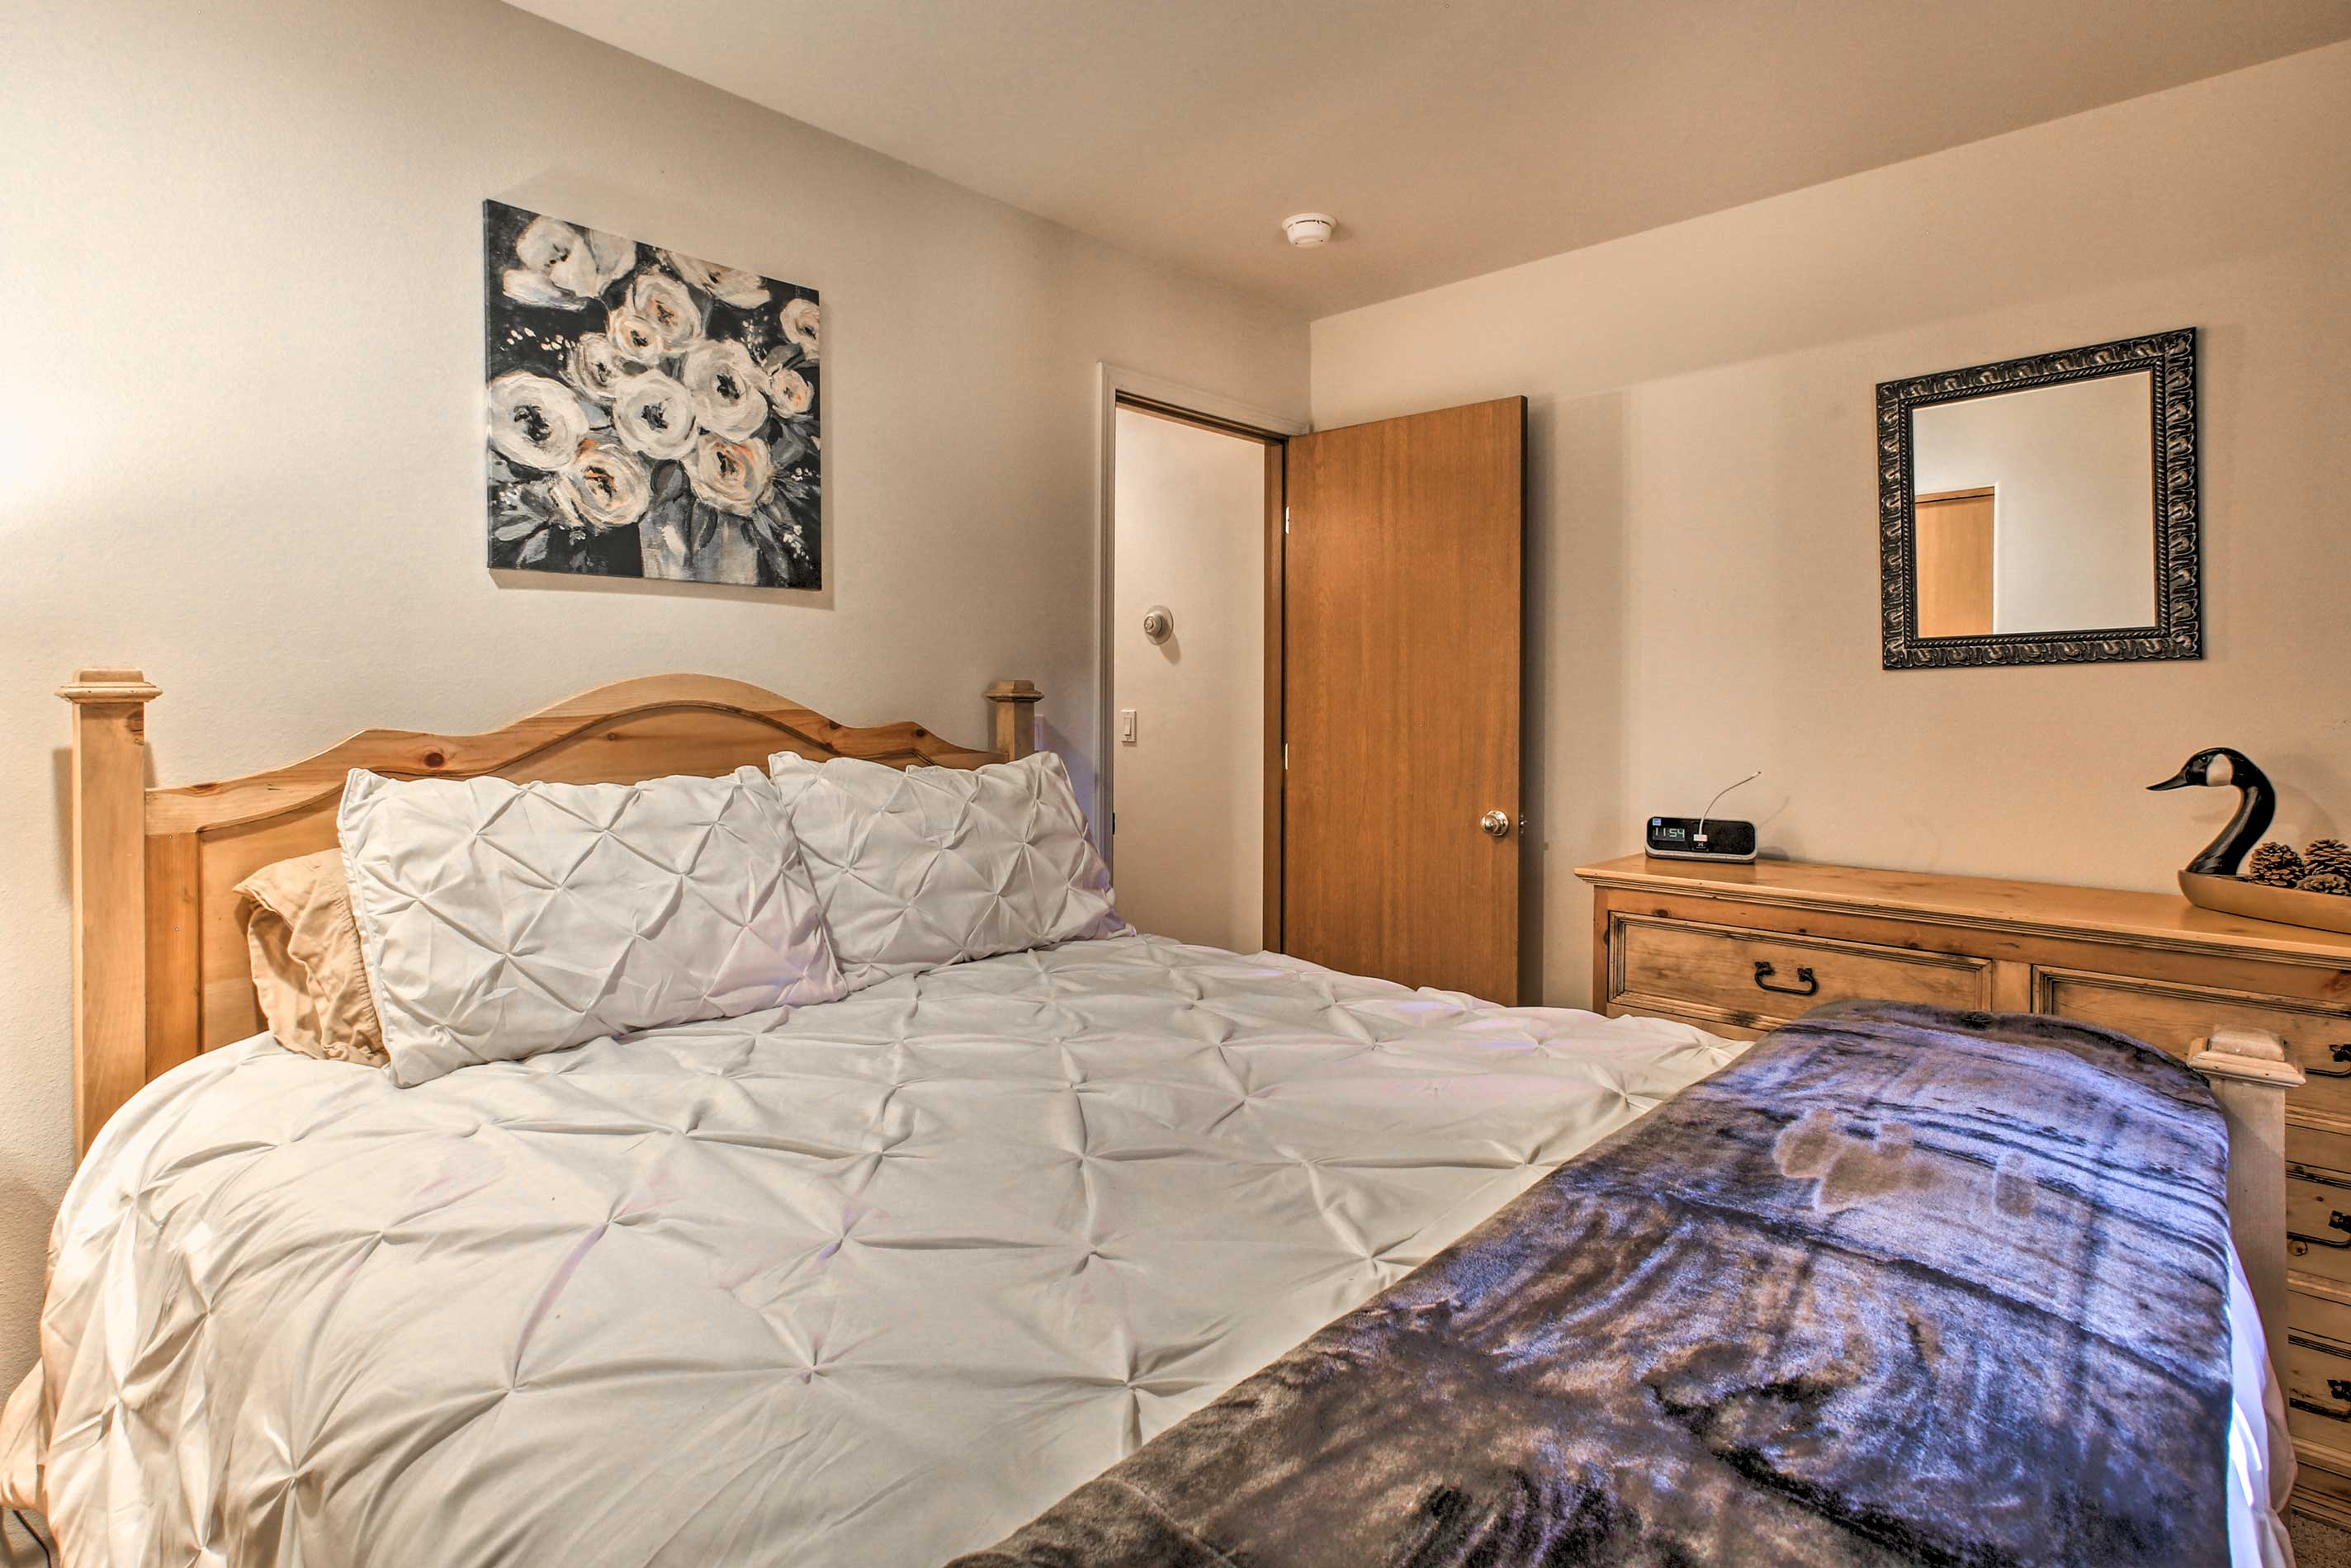 Two travelers will sleep comfortably in this room.